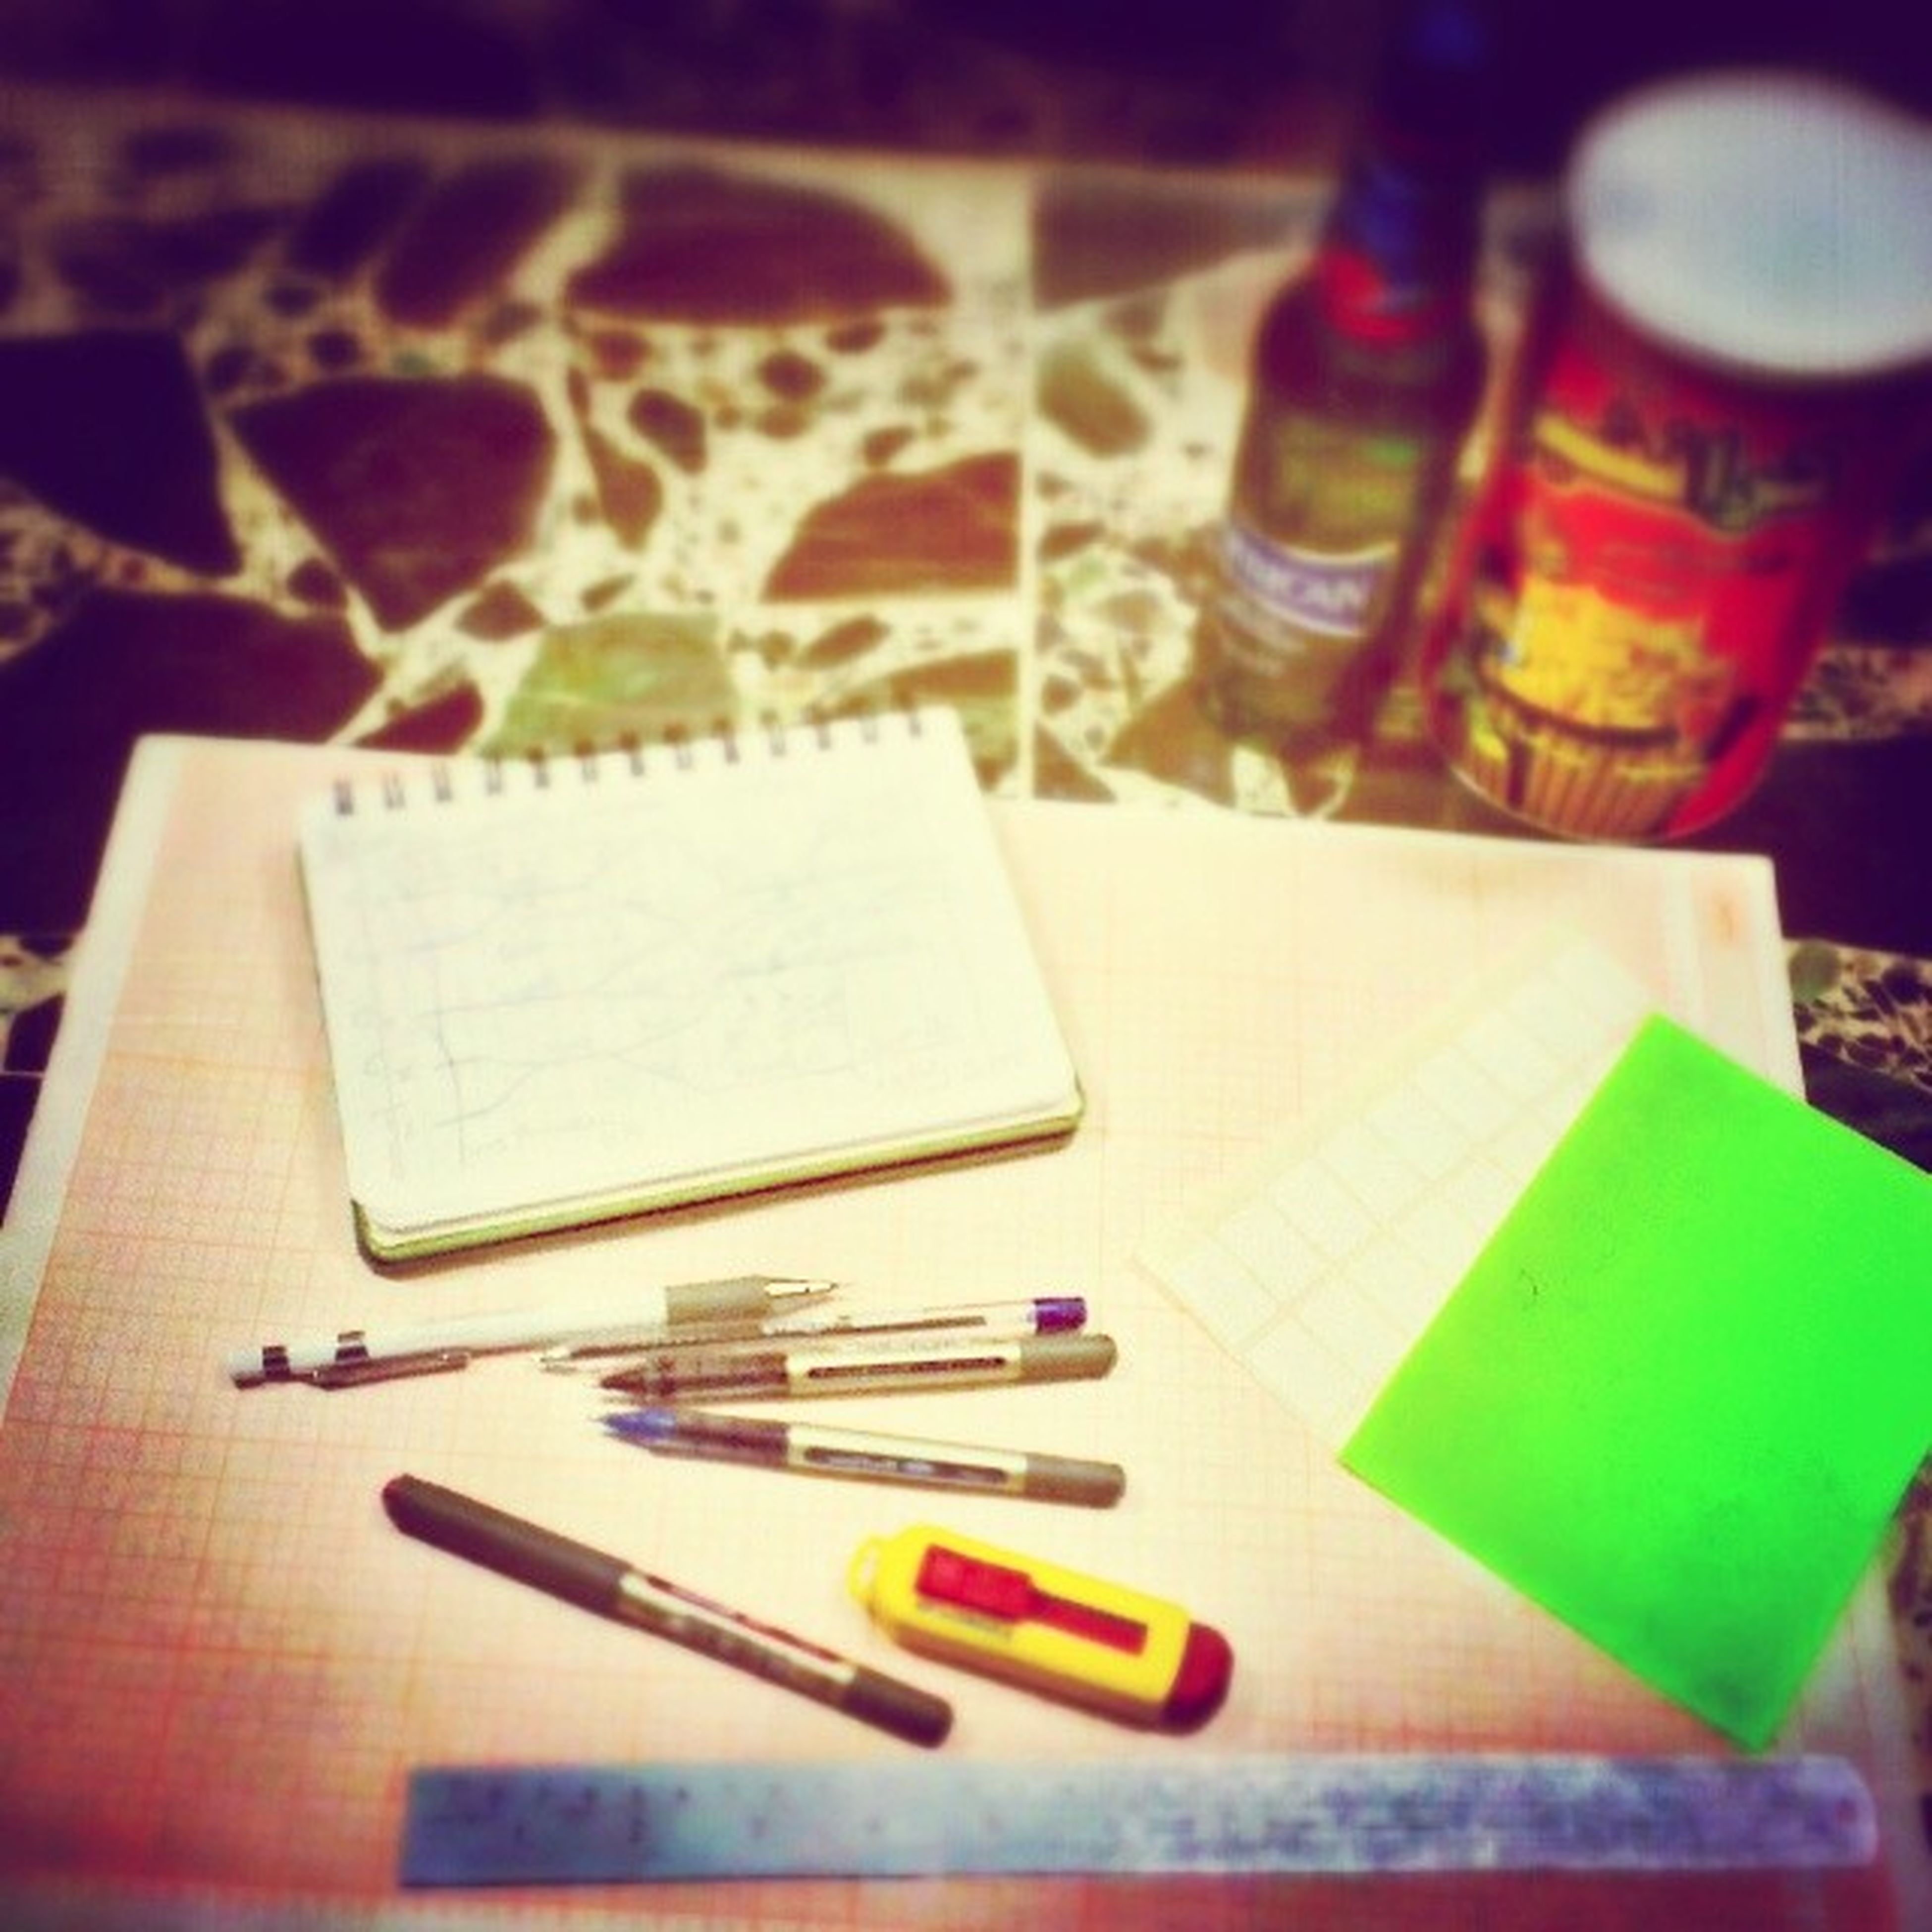 indoors, still life, table, pencil, pen, close-up, book, paper, high angle view, education, multi colored, variation, selective focus, office supply, plastic, choice, colored pencil, art and craft, no people, large group of objects